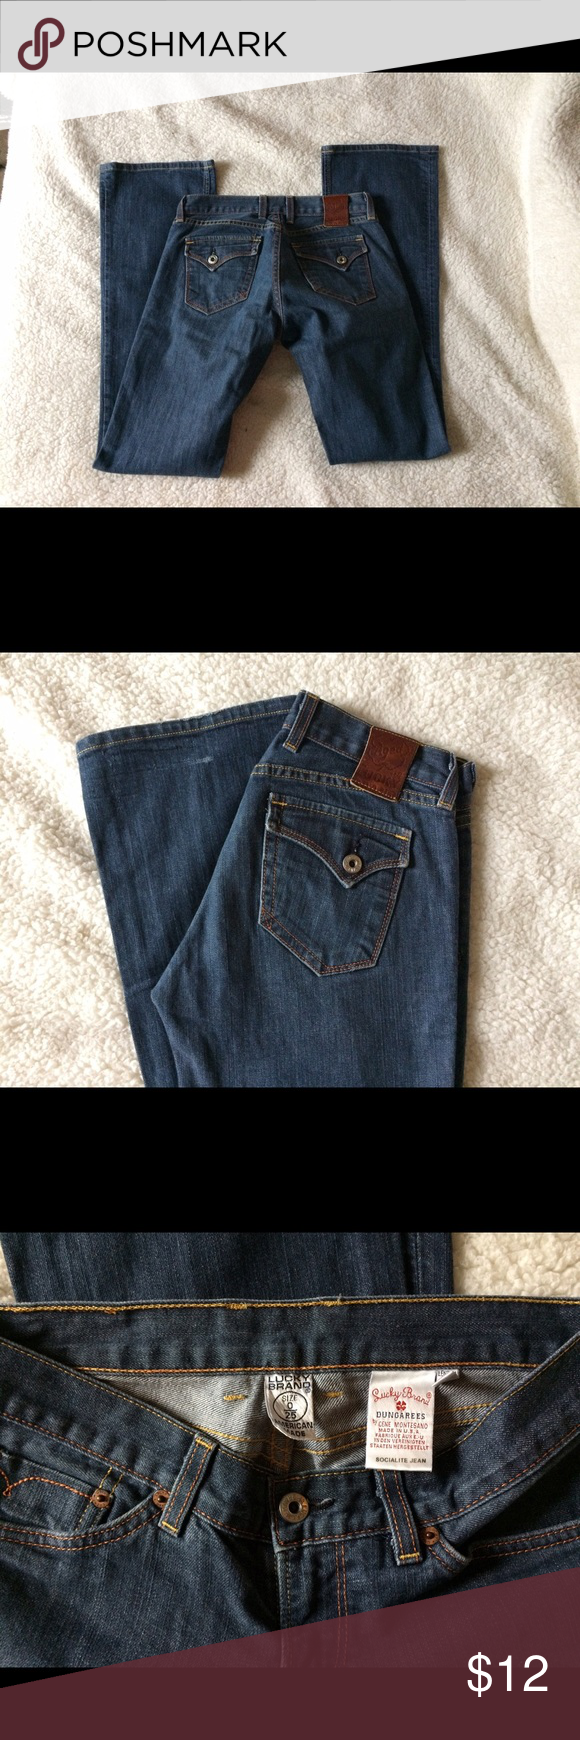 Lucky Brand Dungarees size 0 25. Size 0/25 lucky brand dungarees. Very minimal wear. (2nd photo & 4th photo show the wear)    NO SWAPS! Lucky Brand Jeans Boot Cut